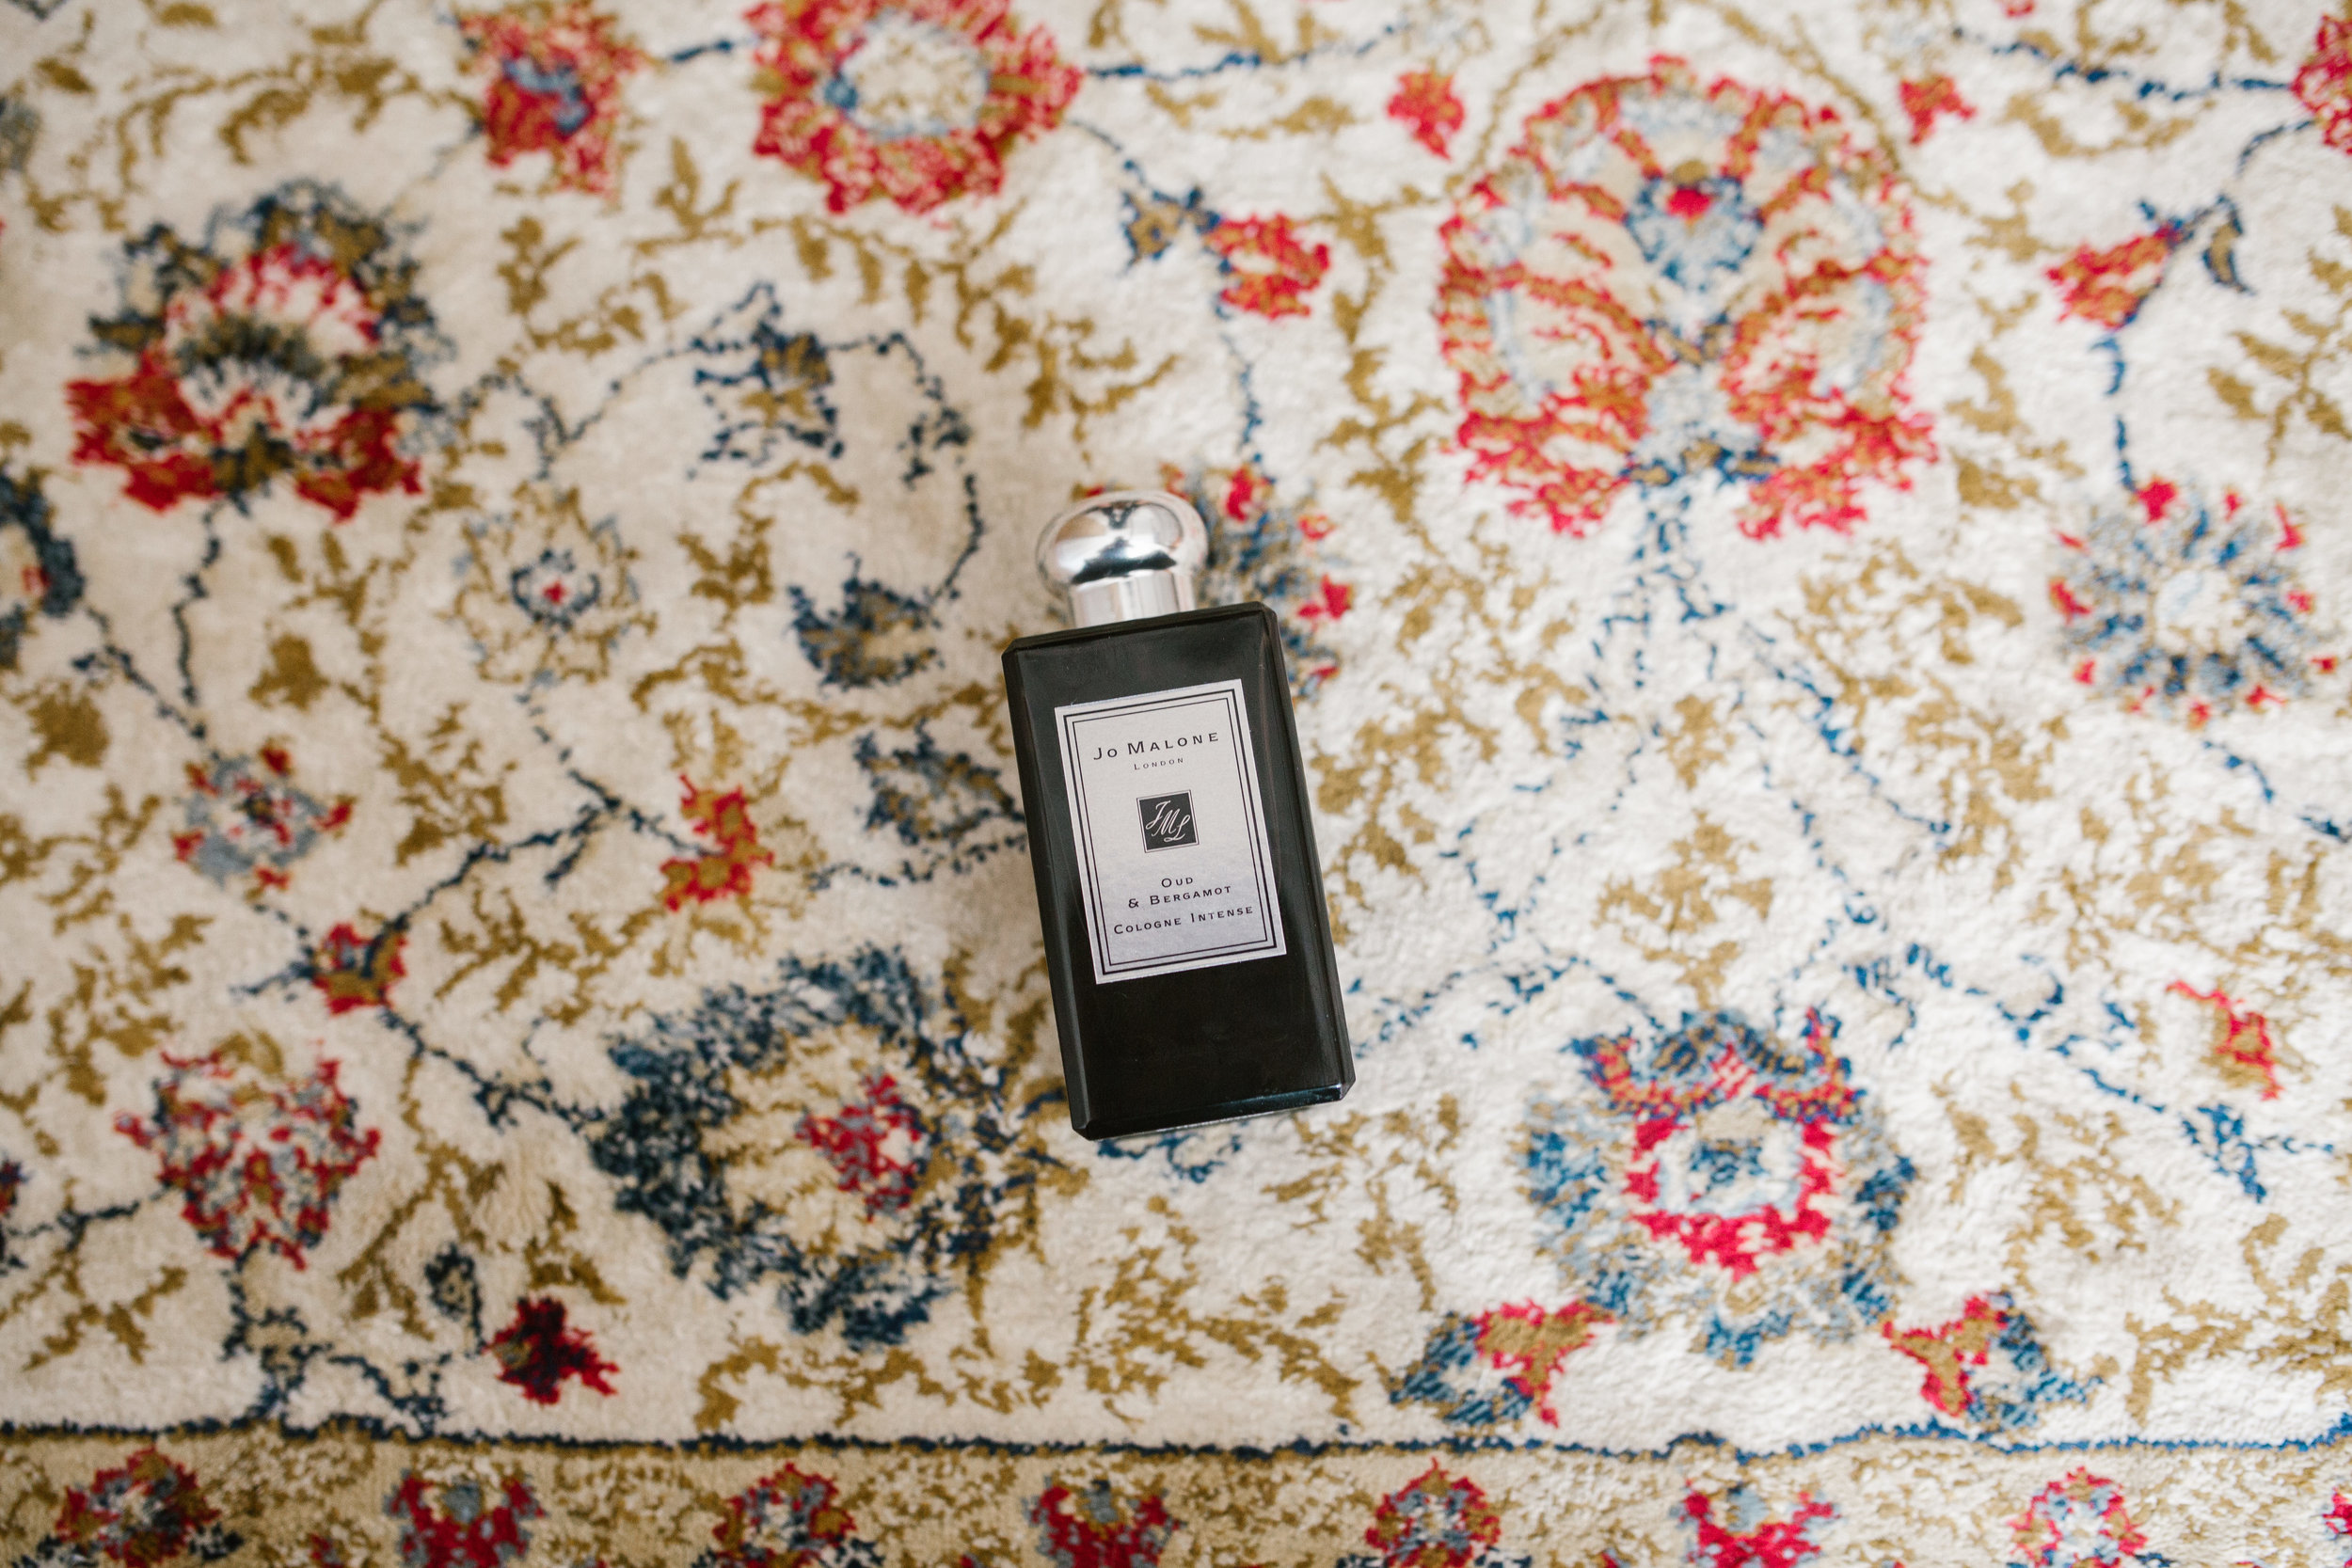 jo malone perfume on patterned carpet